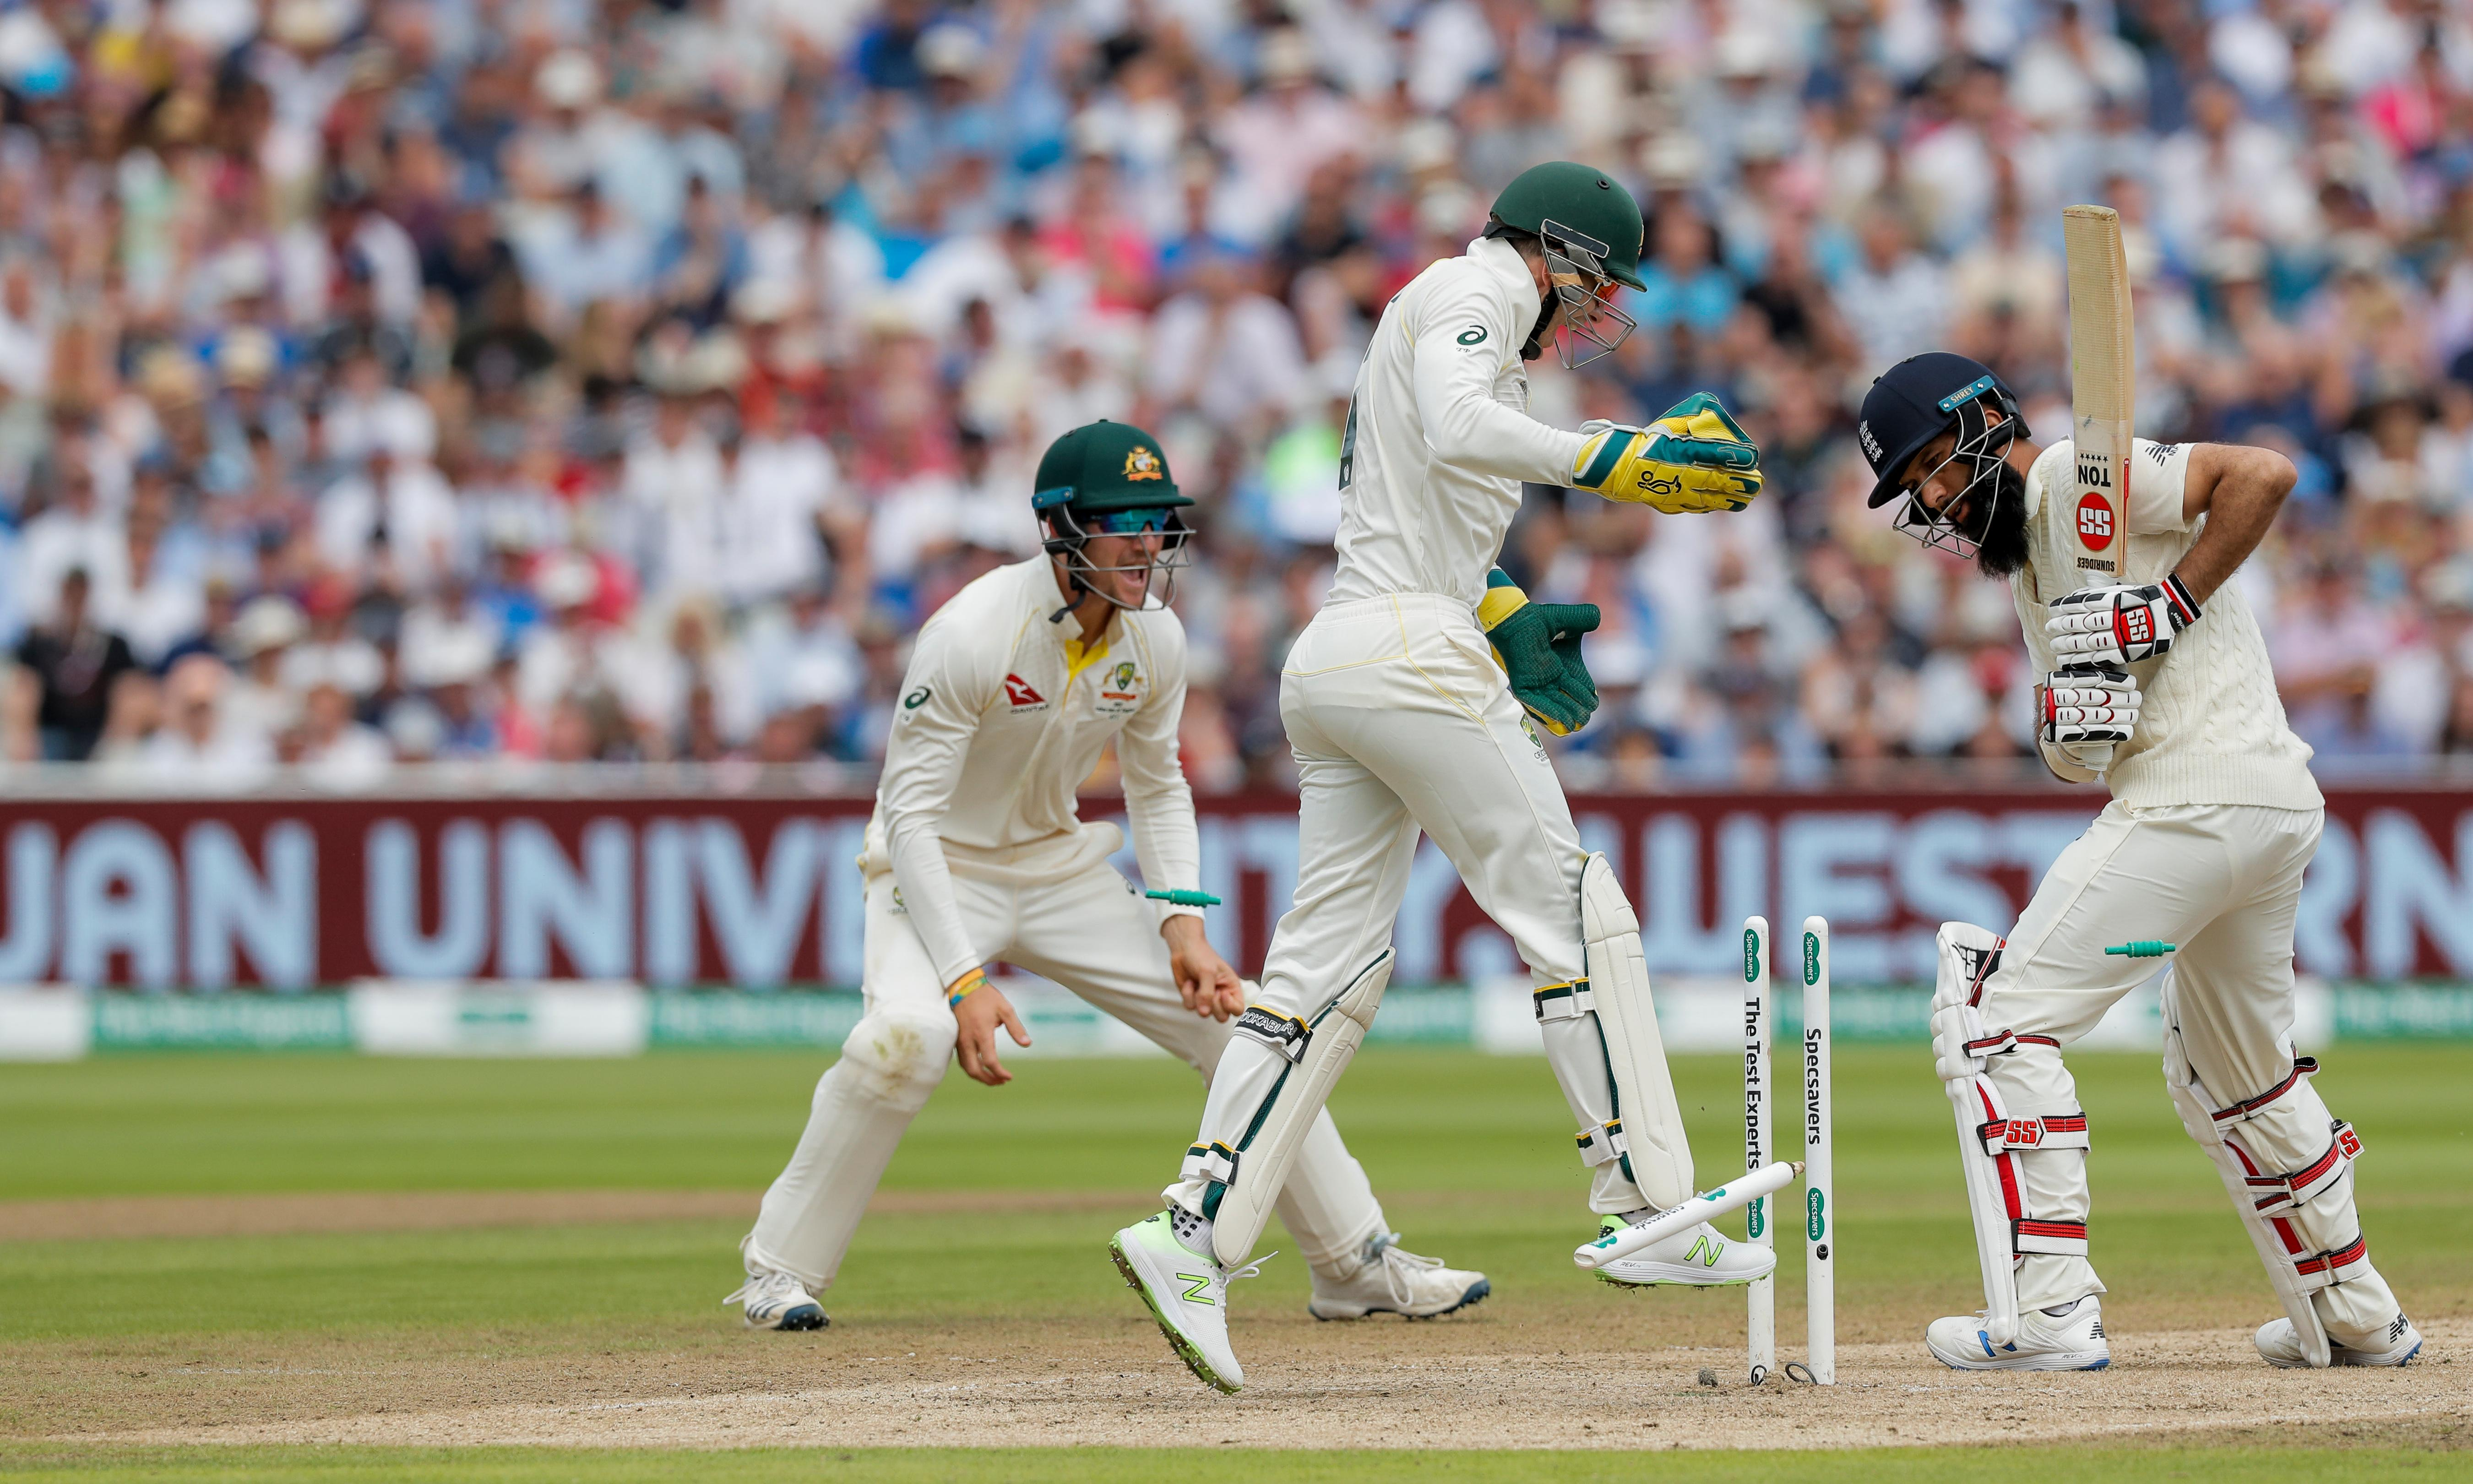 England forced to consider how many, not whether, to make changes